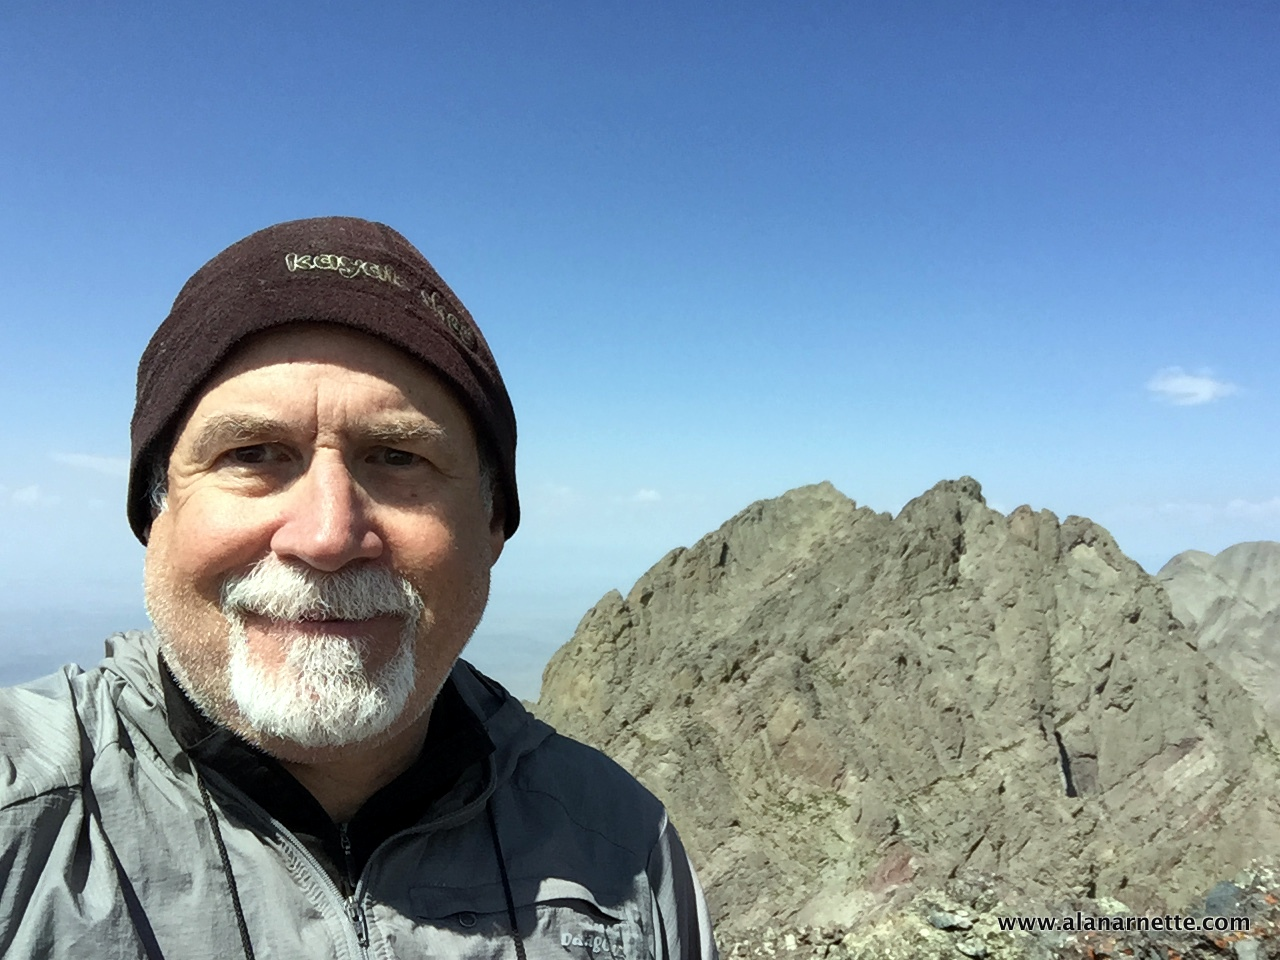 My obligatory selfie on the summit Crestone Needle with Crestone Peak in the background.